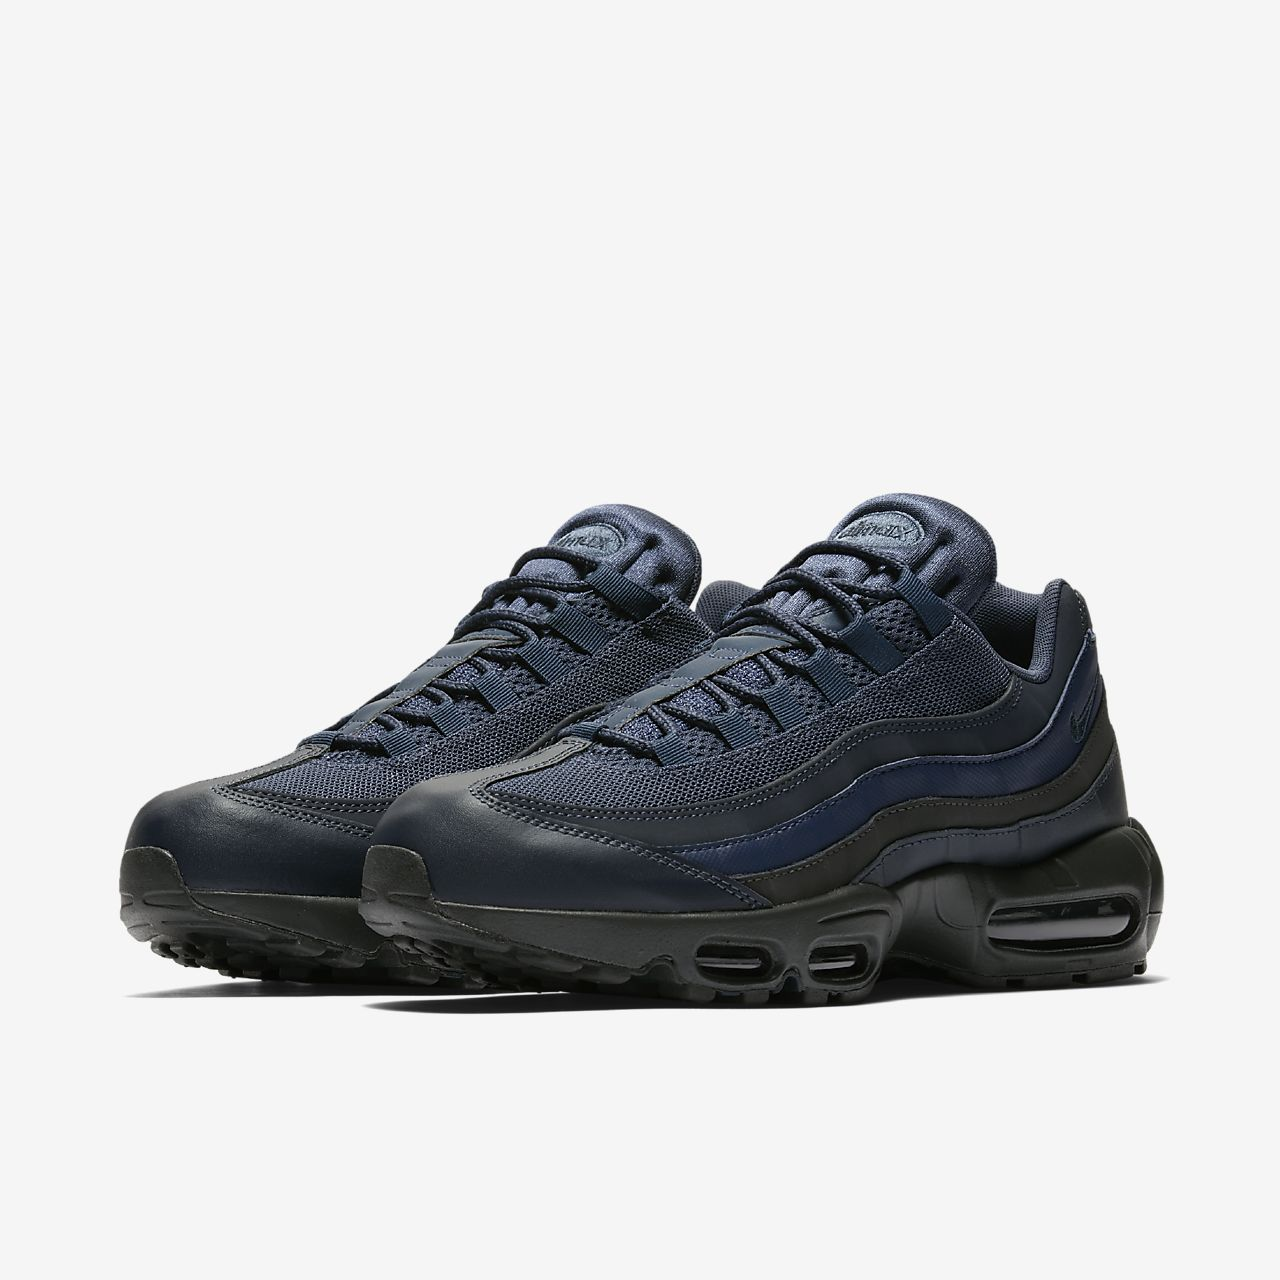 1336f5255da Nike Air Max 95 Essential Men s Shoe. Nike.com GB